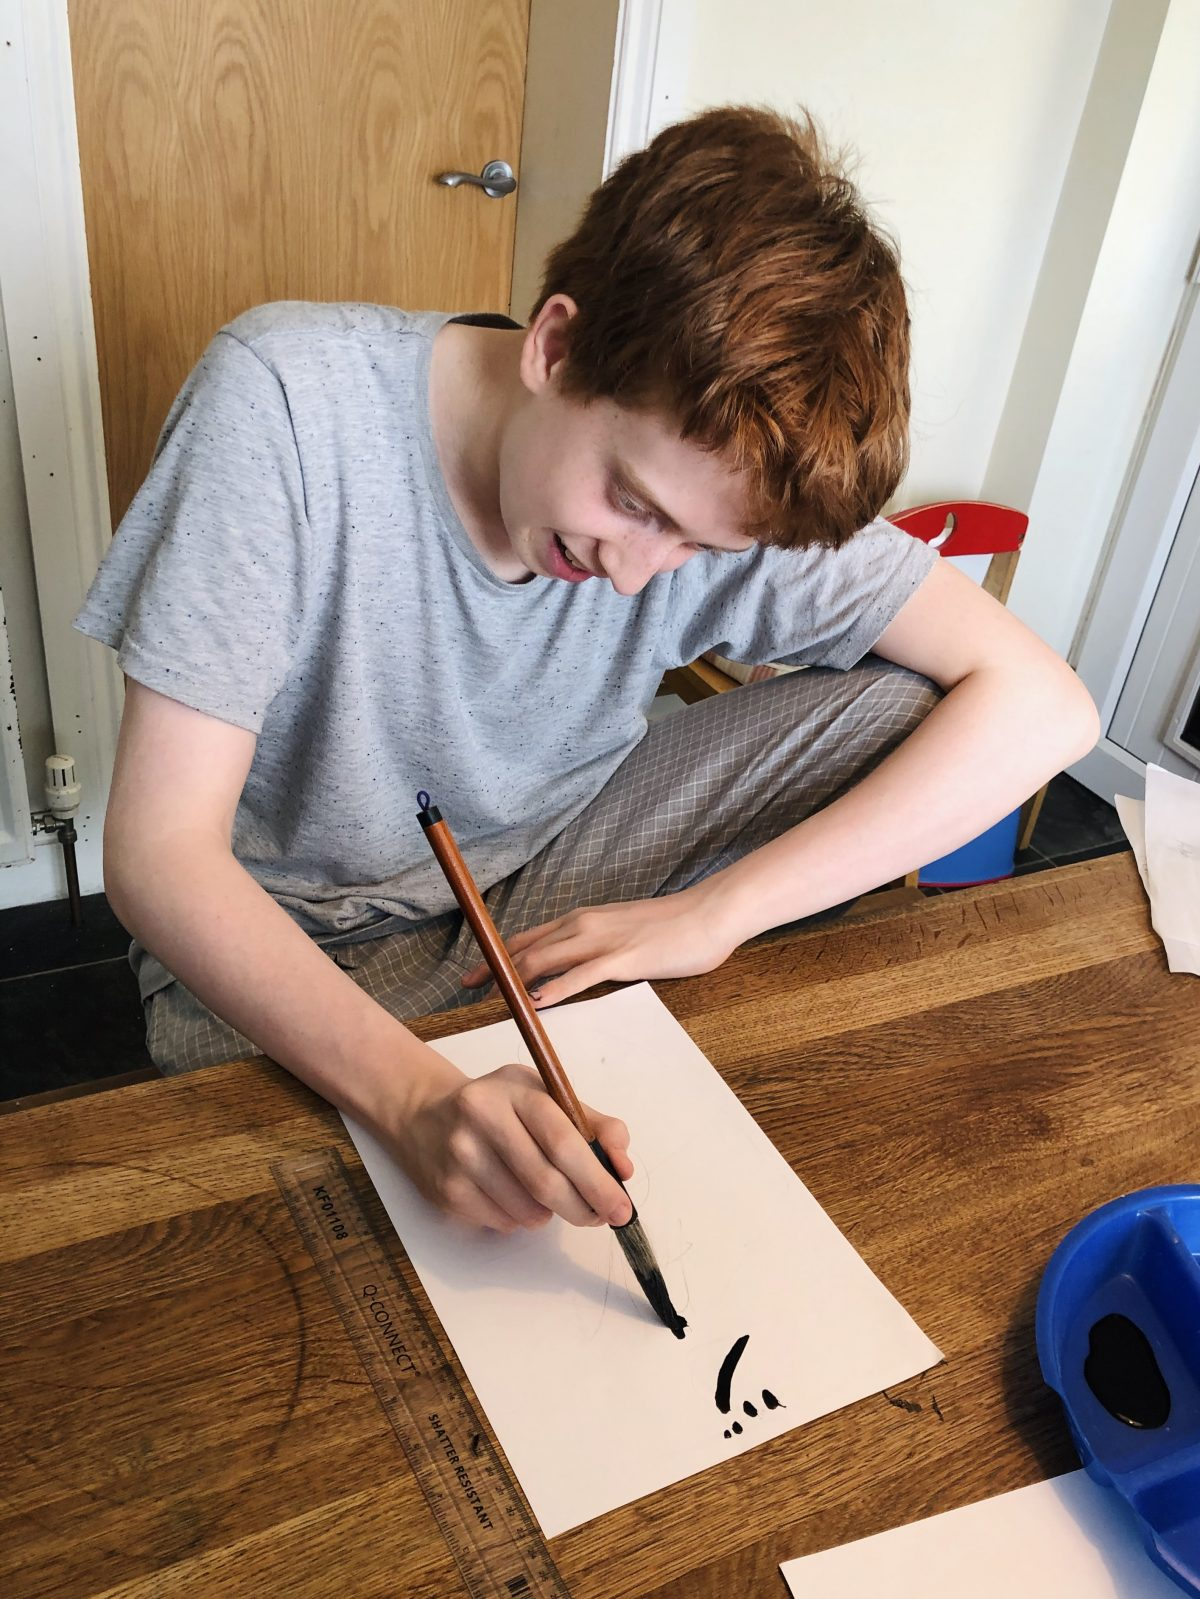 A teenager practices Japanese calligraphy with brush and ink.